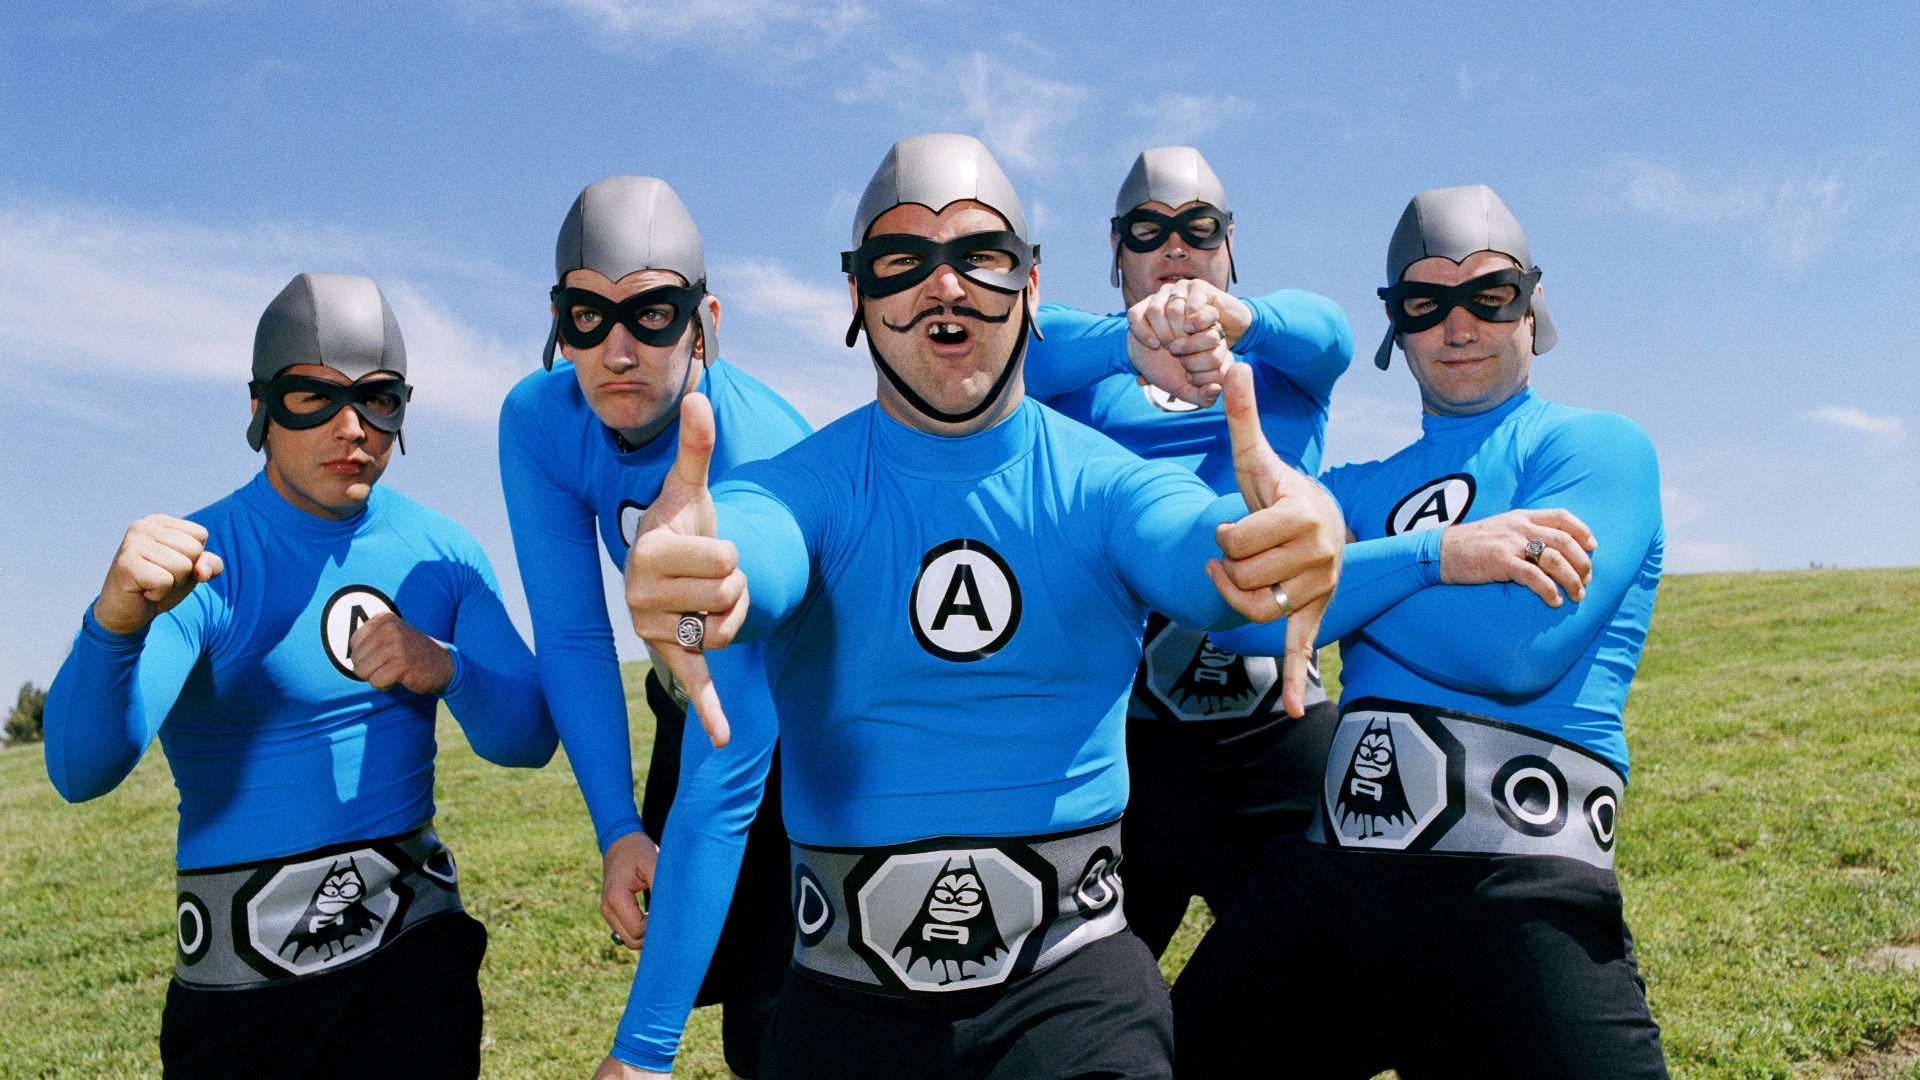 Images of The Aquabats | 1920x1080